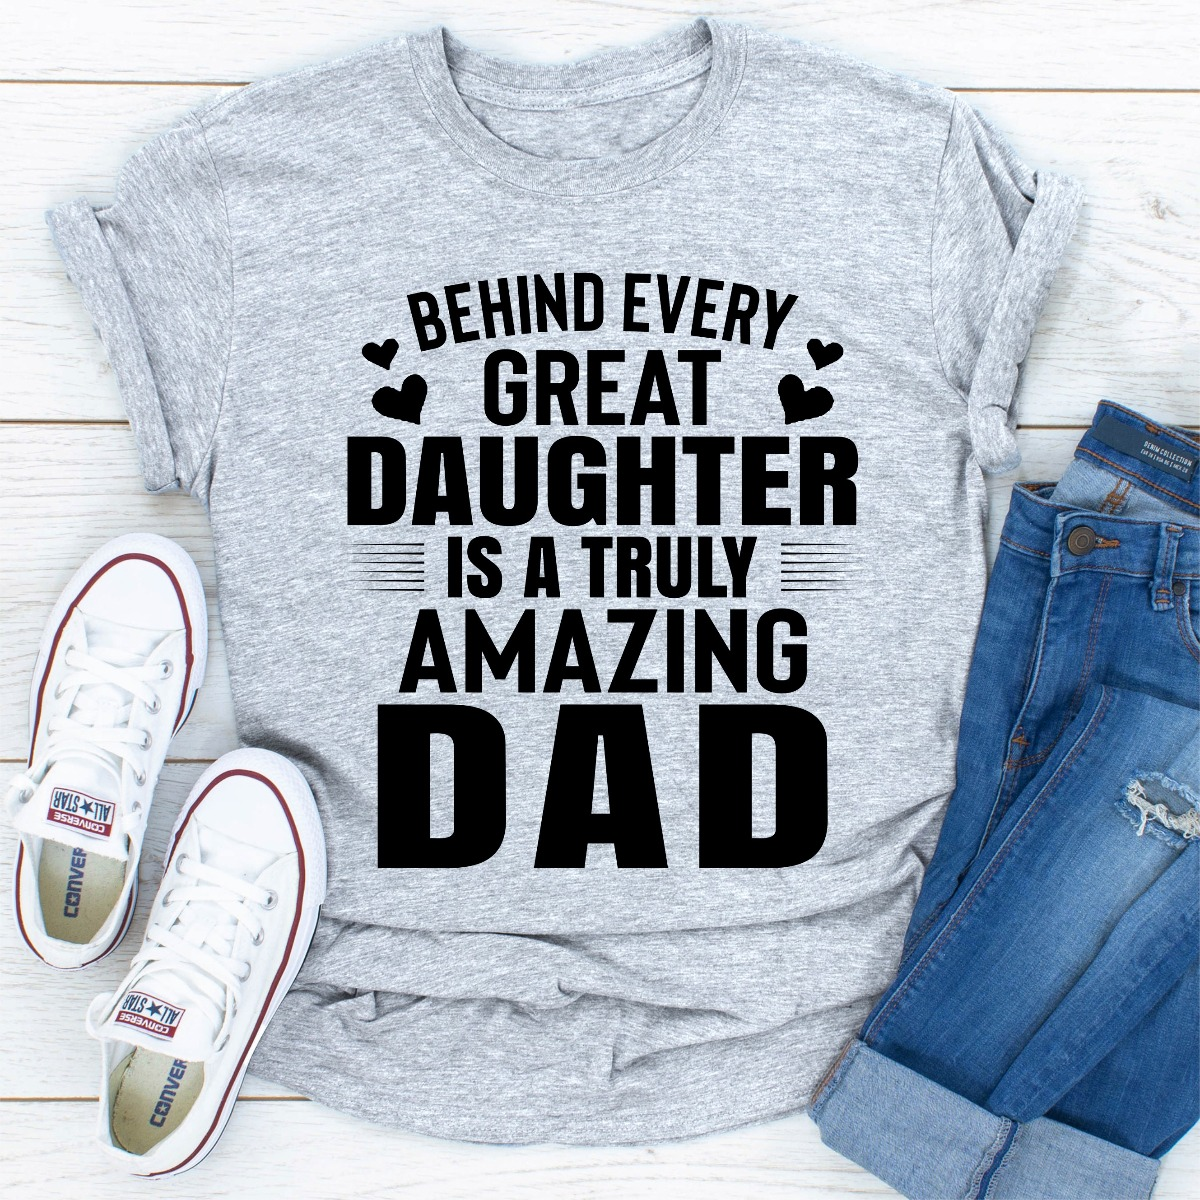 Behind Every Great Daughter Is A Truly Amazing Dad (Sport Grey / 3Xl)